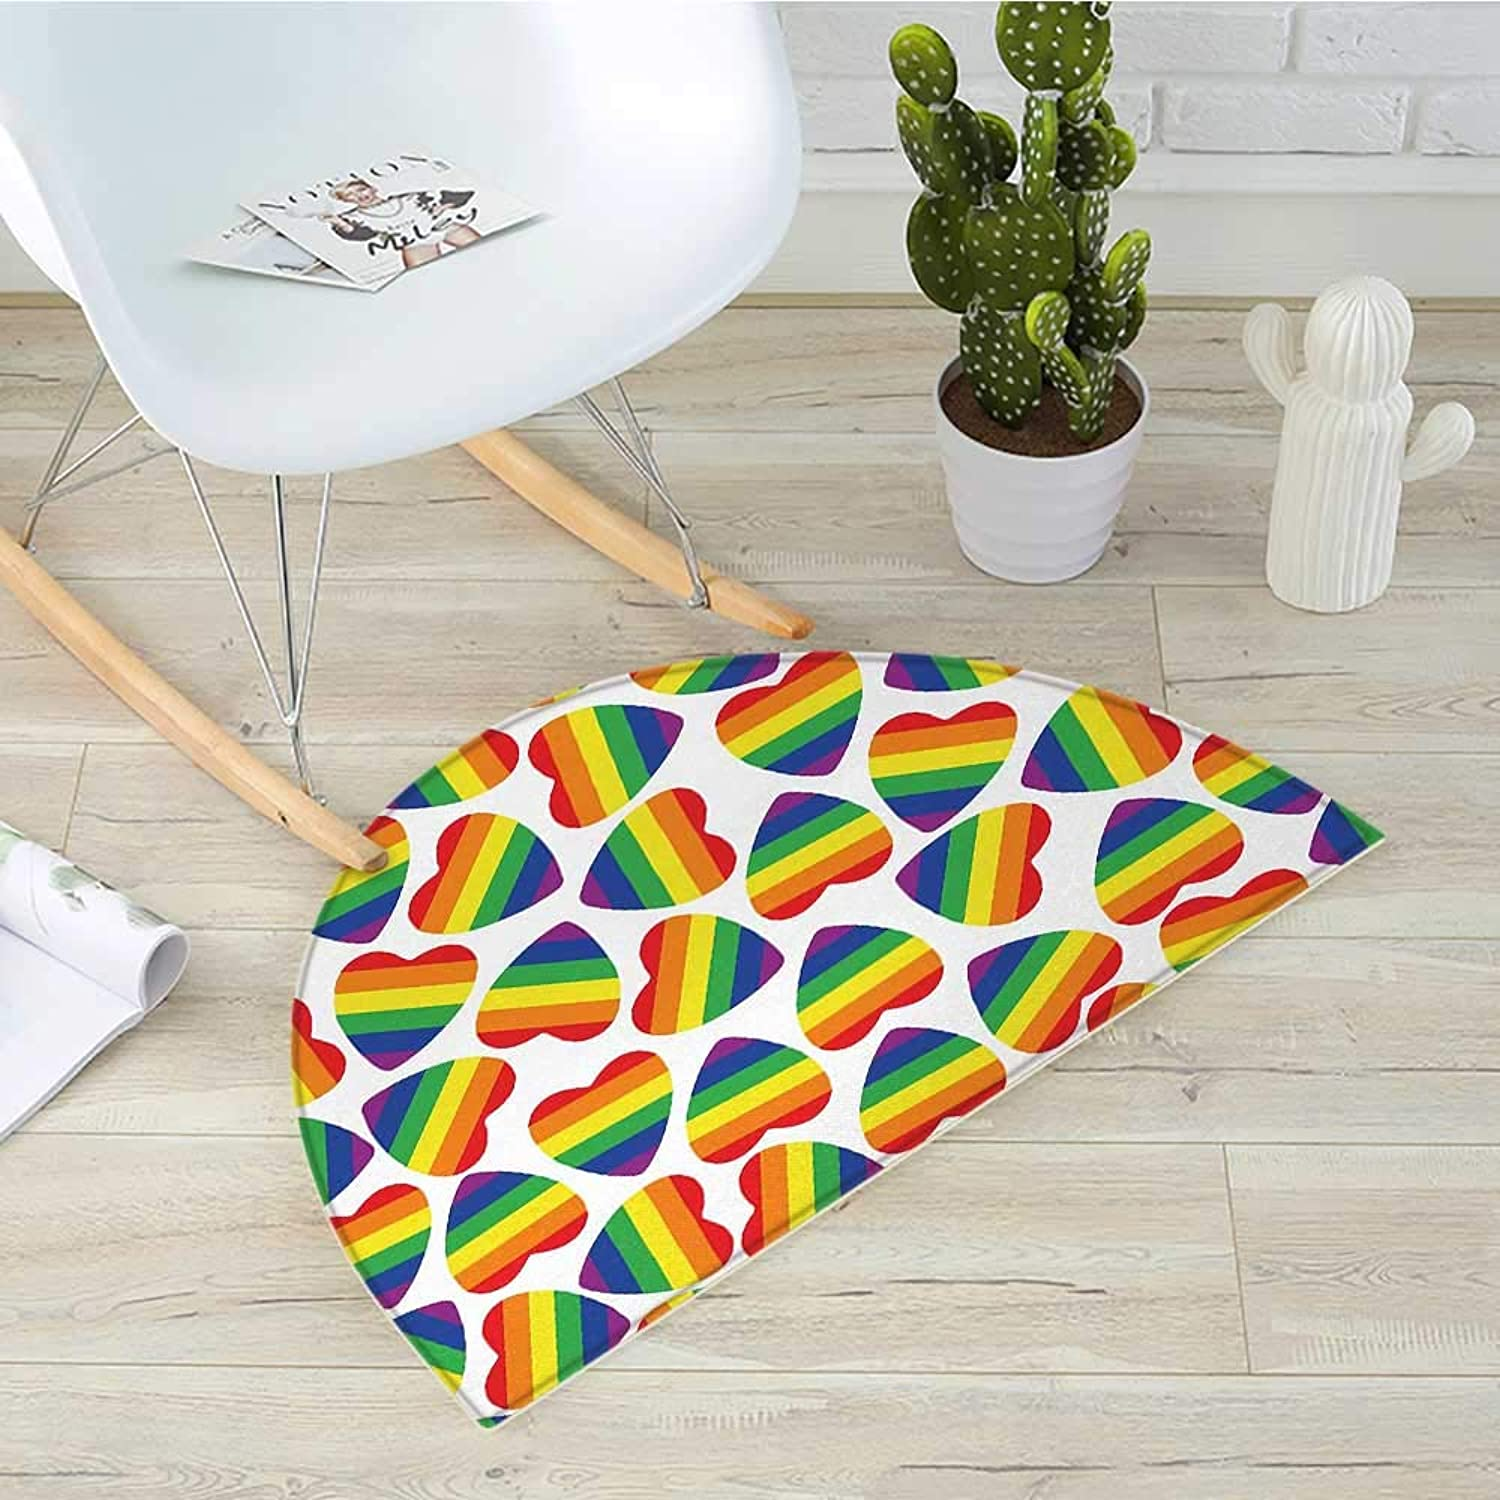 Pride Half Round Door mats Cute Heart Shapes in LGBT colors Striped Design with Homosexuality Liberation Theme Bathroom Mat H 39.3  xD 59  Multicolor